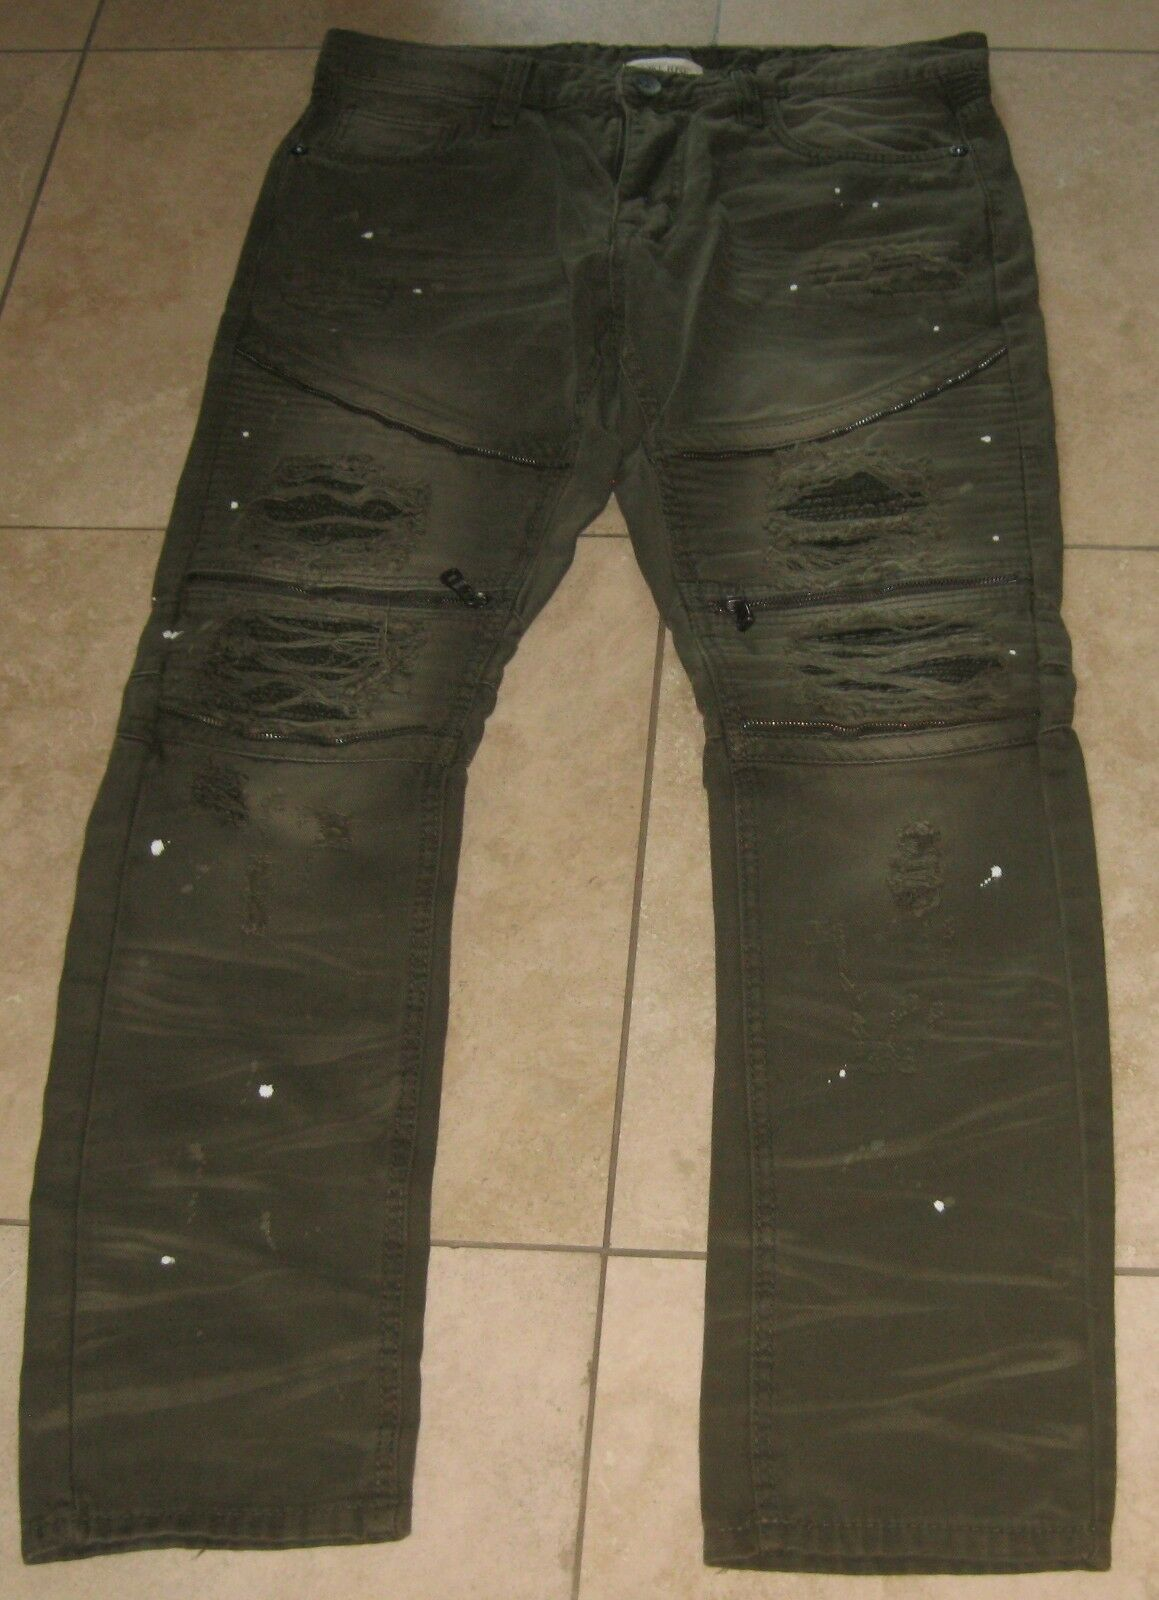 New Smoke Rise Ripped Olive Denim Jeans  Size 38 32